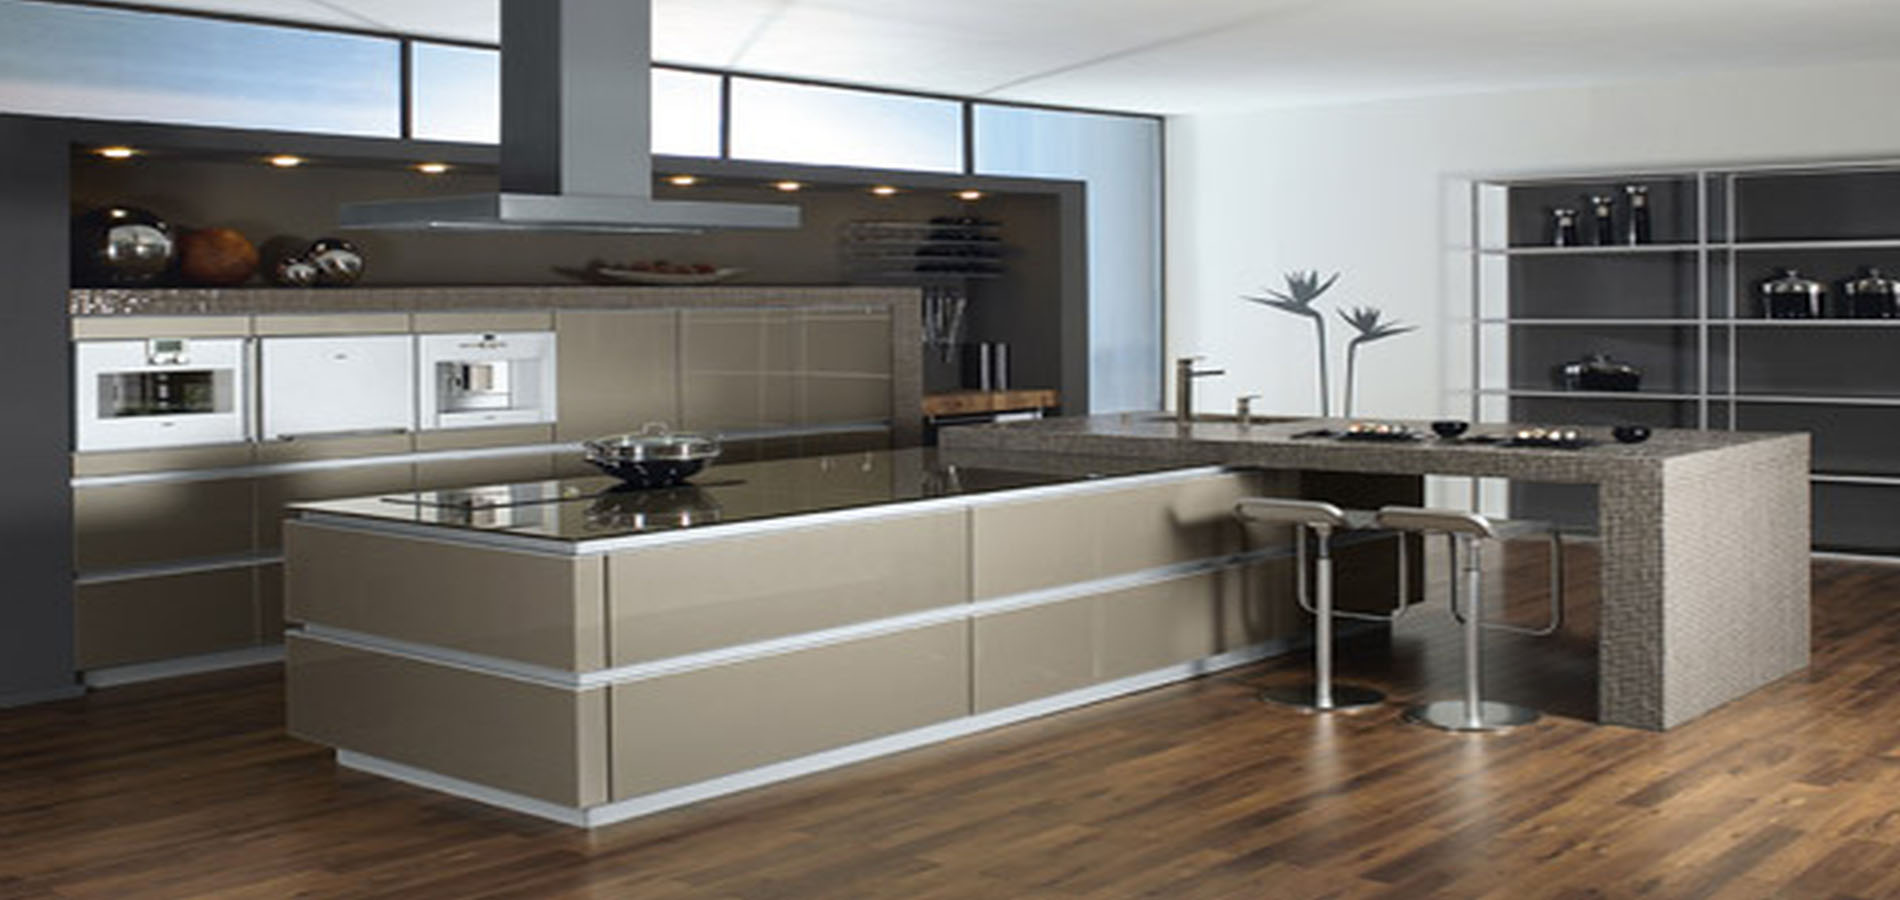 Cheap kitchen cabinet malaysia great design functional for Latest kitchen units designs